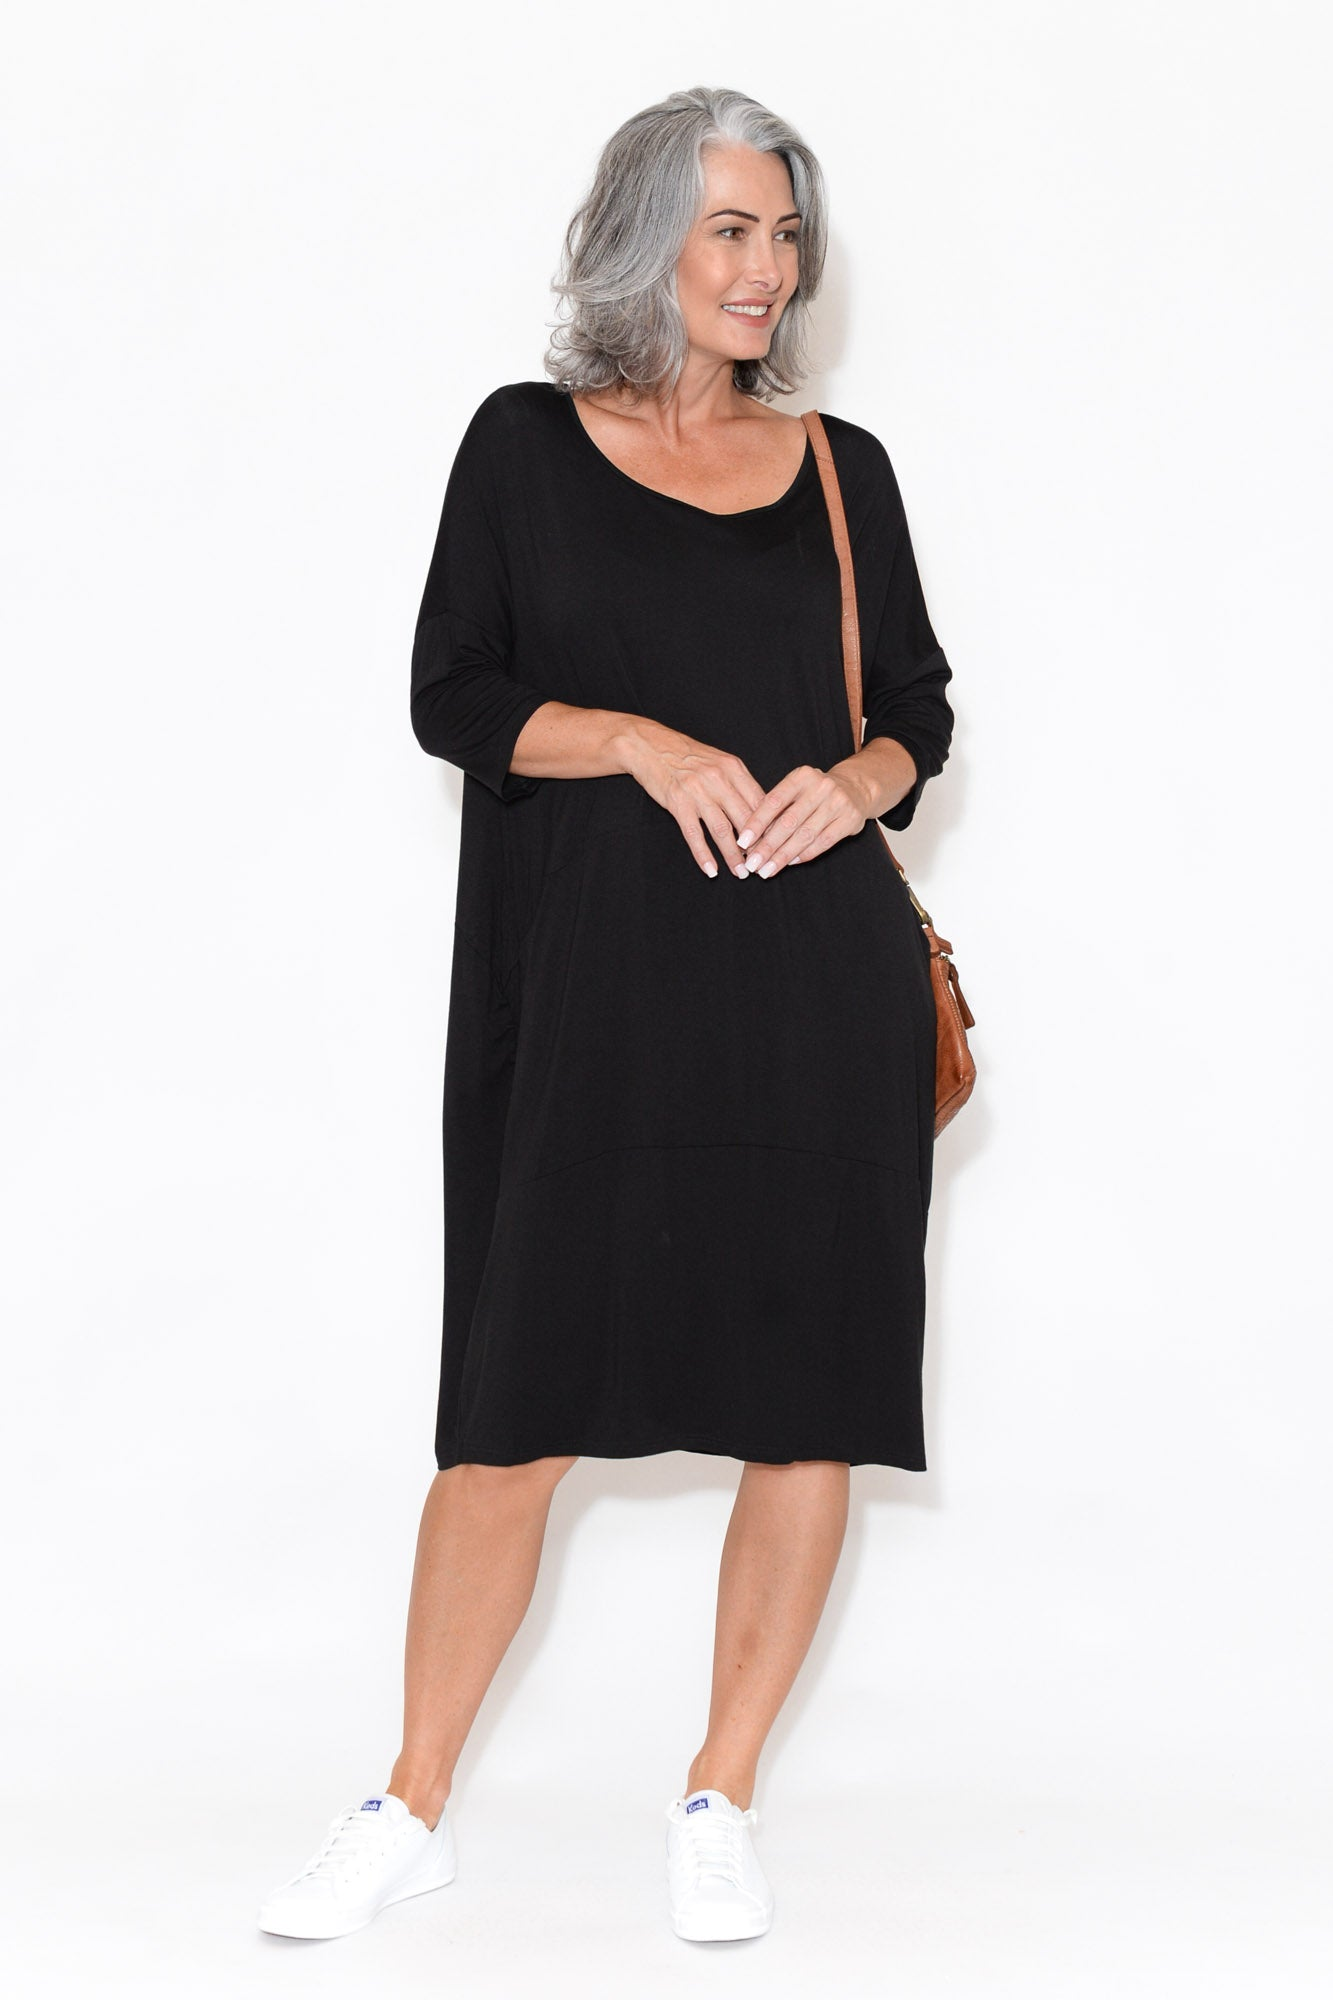 Zali Black Panel Seam Dress